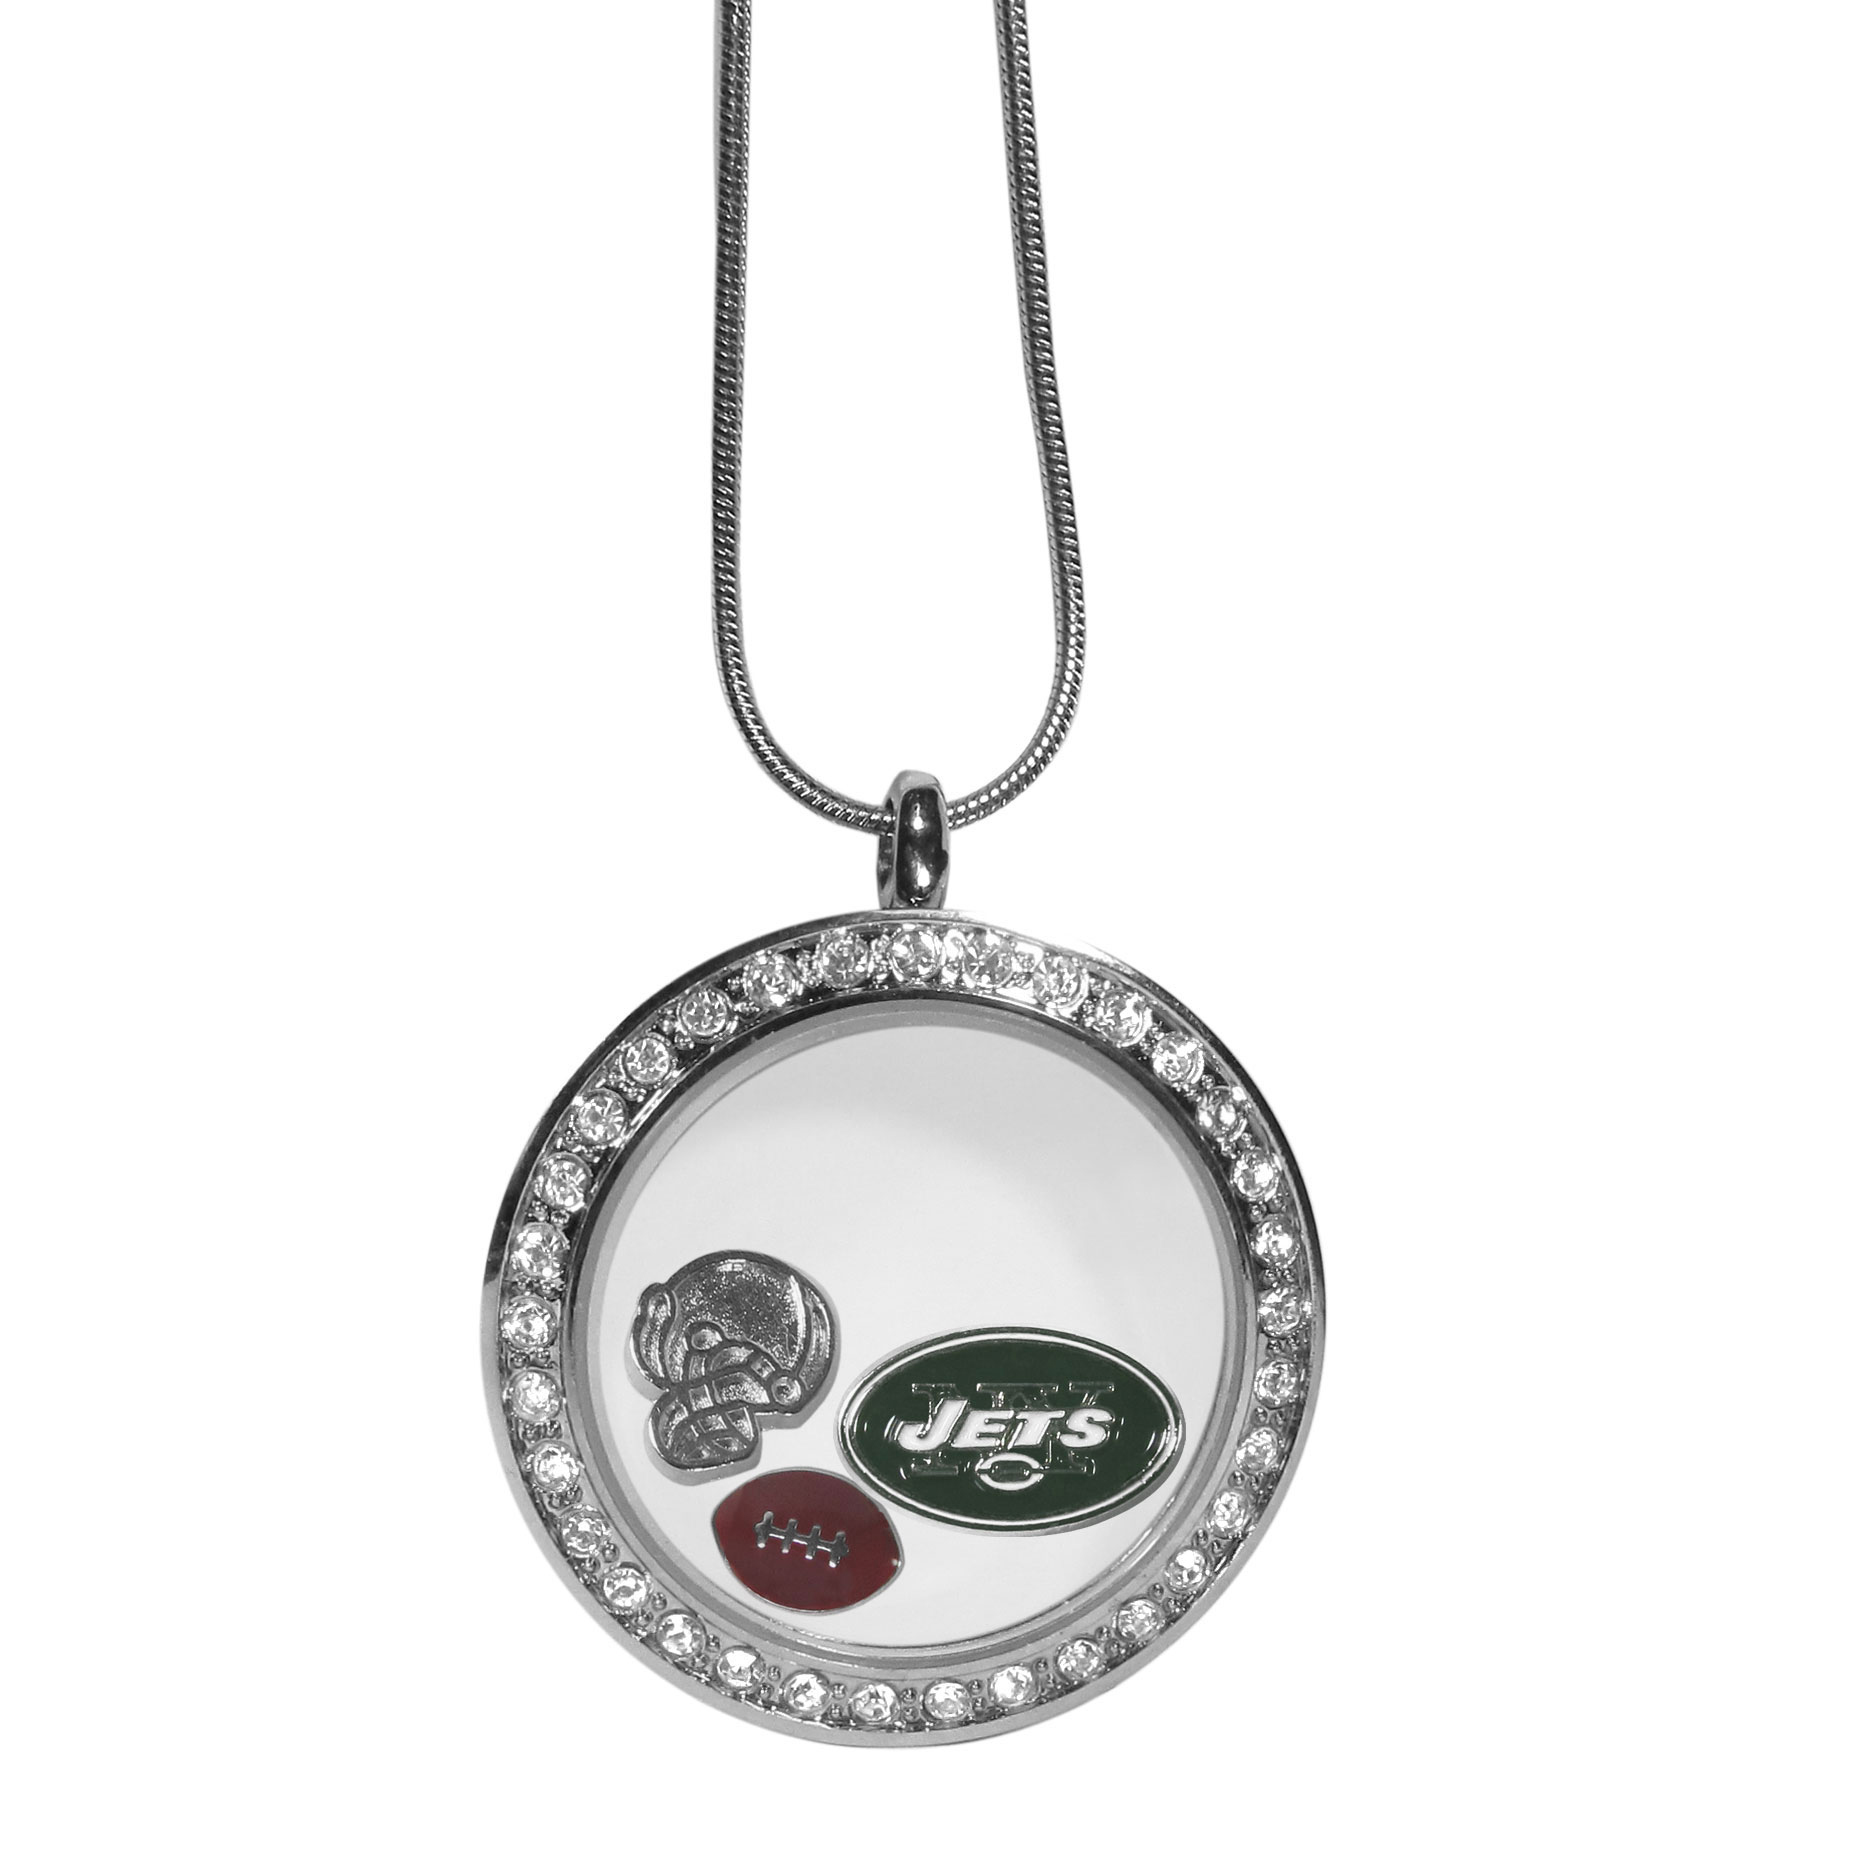 New York Jets Locket Necklace - We have taken the classic floating charm locket and combined with licensed sports charms to create a must have fan necklace. The necklace comes with 3 charms; 1 New York Jets charm, one football charm and one helmet charm. The charms float in a beautiful locket that has a strong magnetic closure with a rhinestone border. The locket comes on an 18 inch snake chain with 2 inch extender.